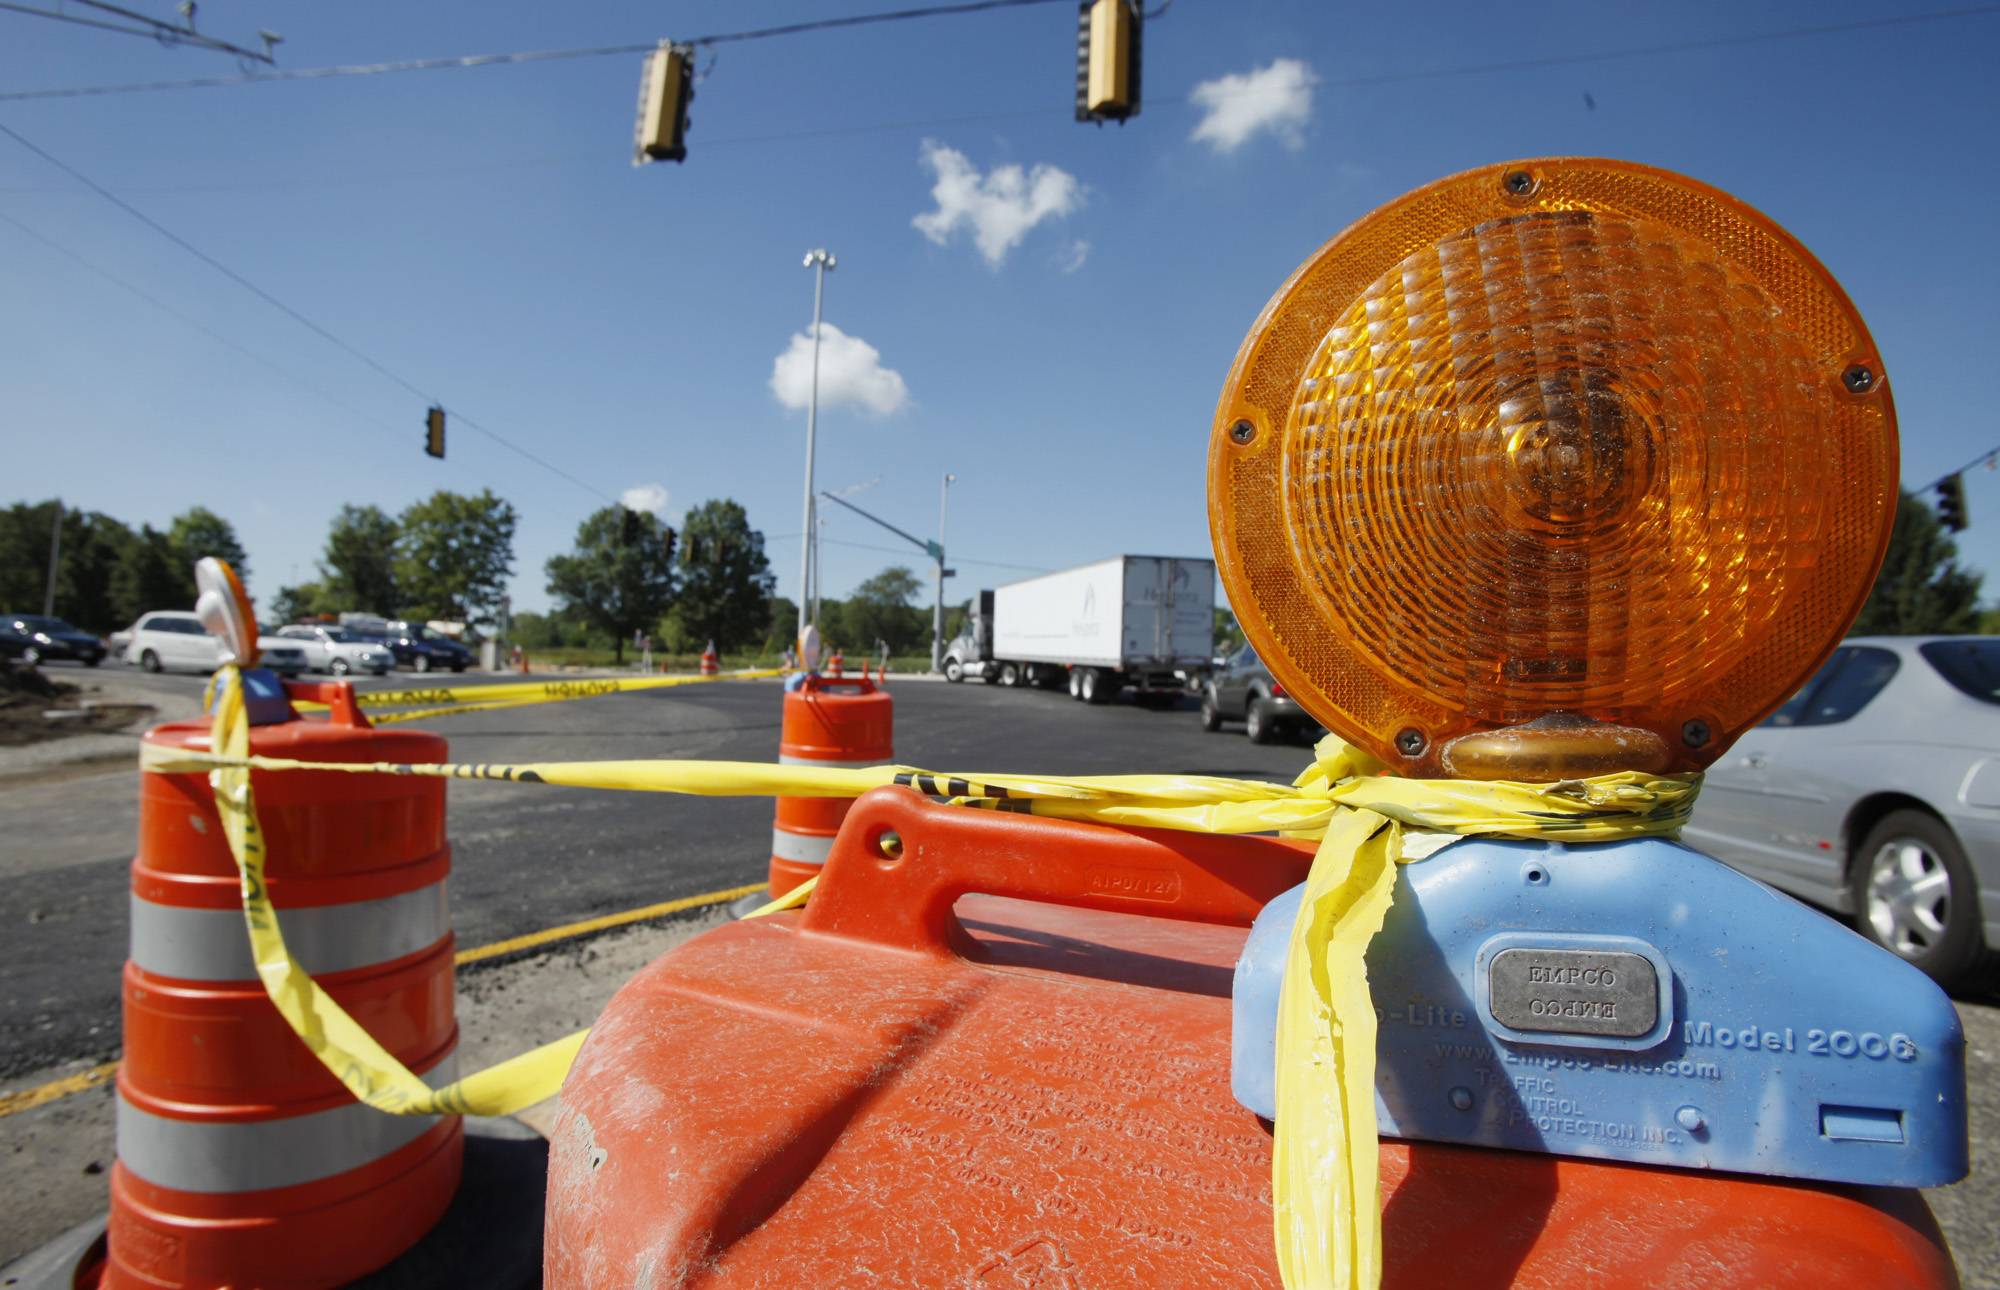 You may not like the sight of orange barrels as you drive around the suburbs during the summer, but you might want to get used to them. Up to 70 transportation improvement projects could come our way in 2015, according to a budget plan from the Kane County Division of Transportation.